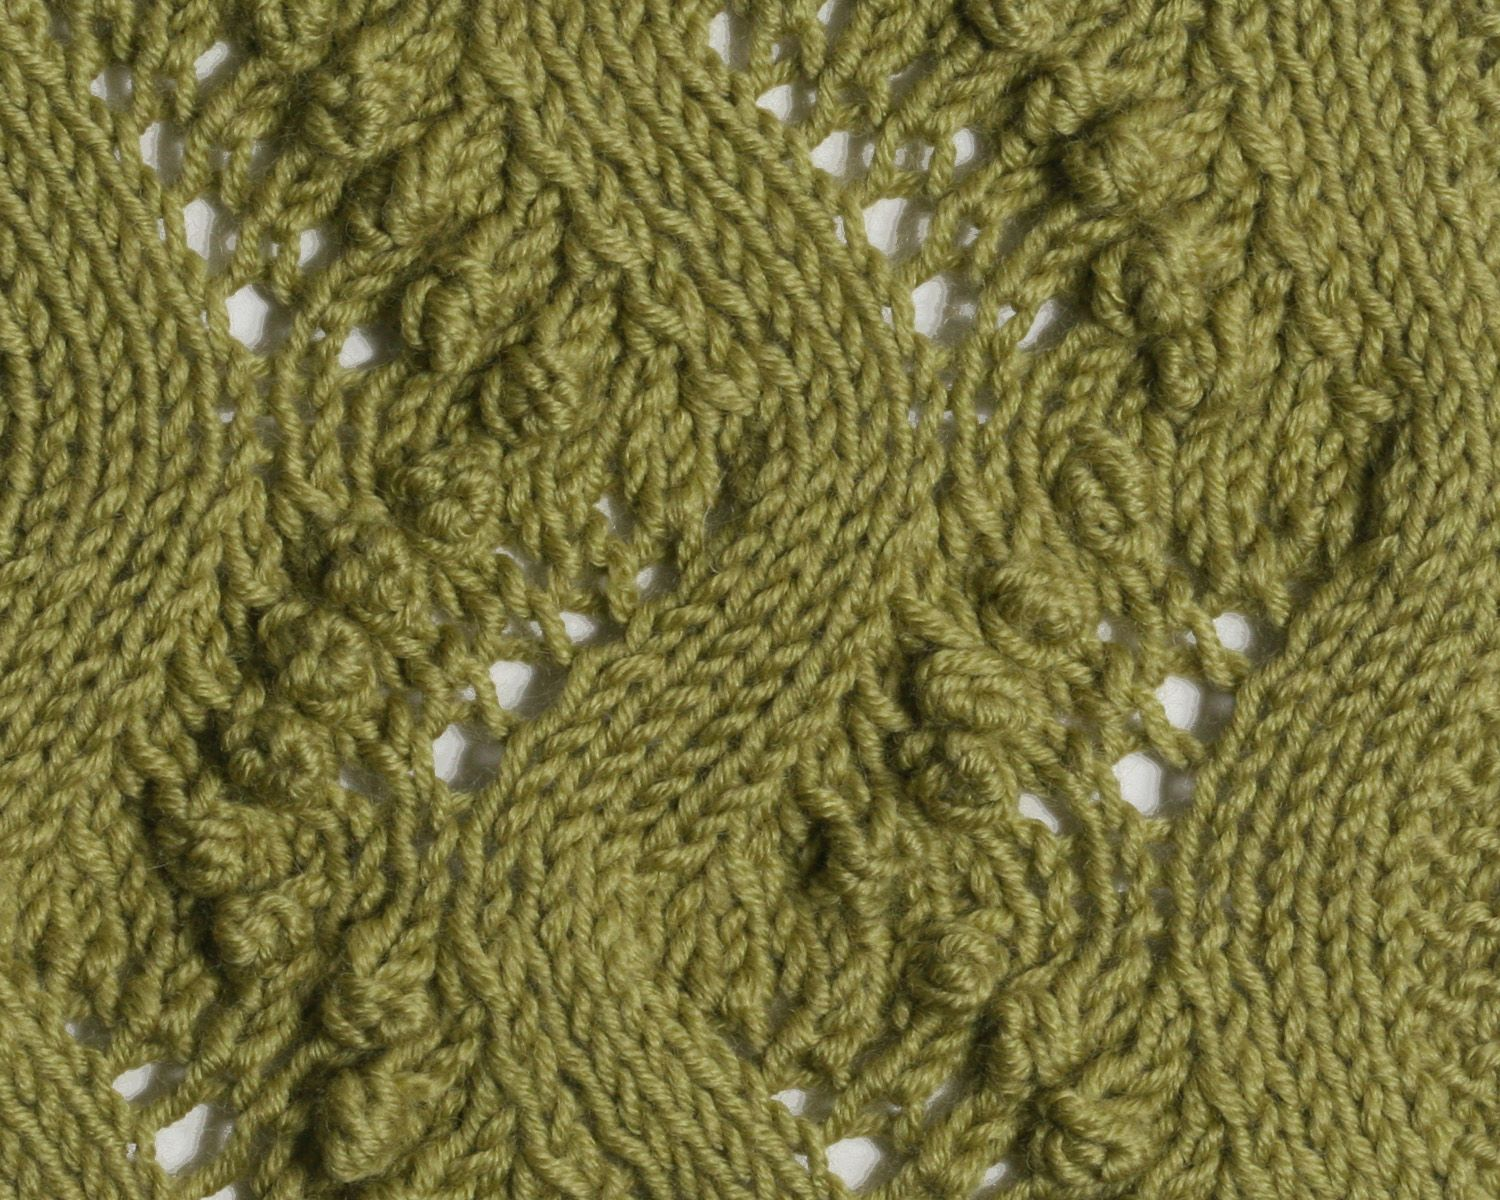 Knotted Waves | Bobbles and Slip Stitches | Pinterest | Loom ...